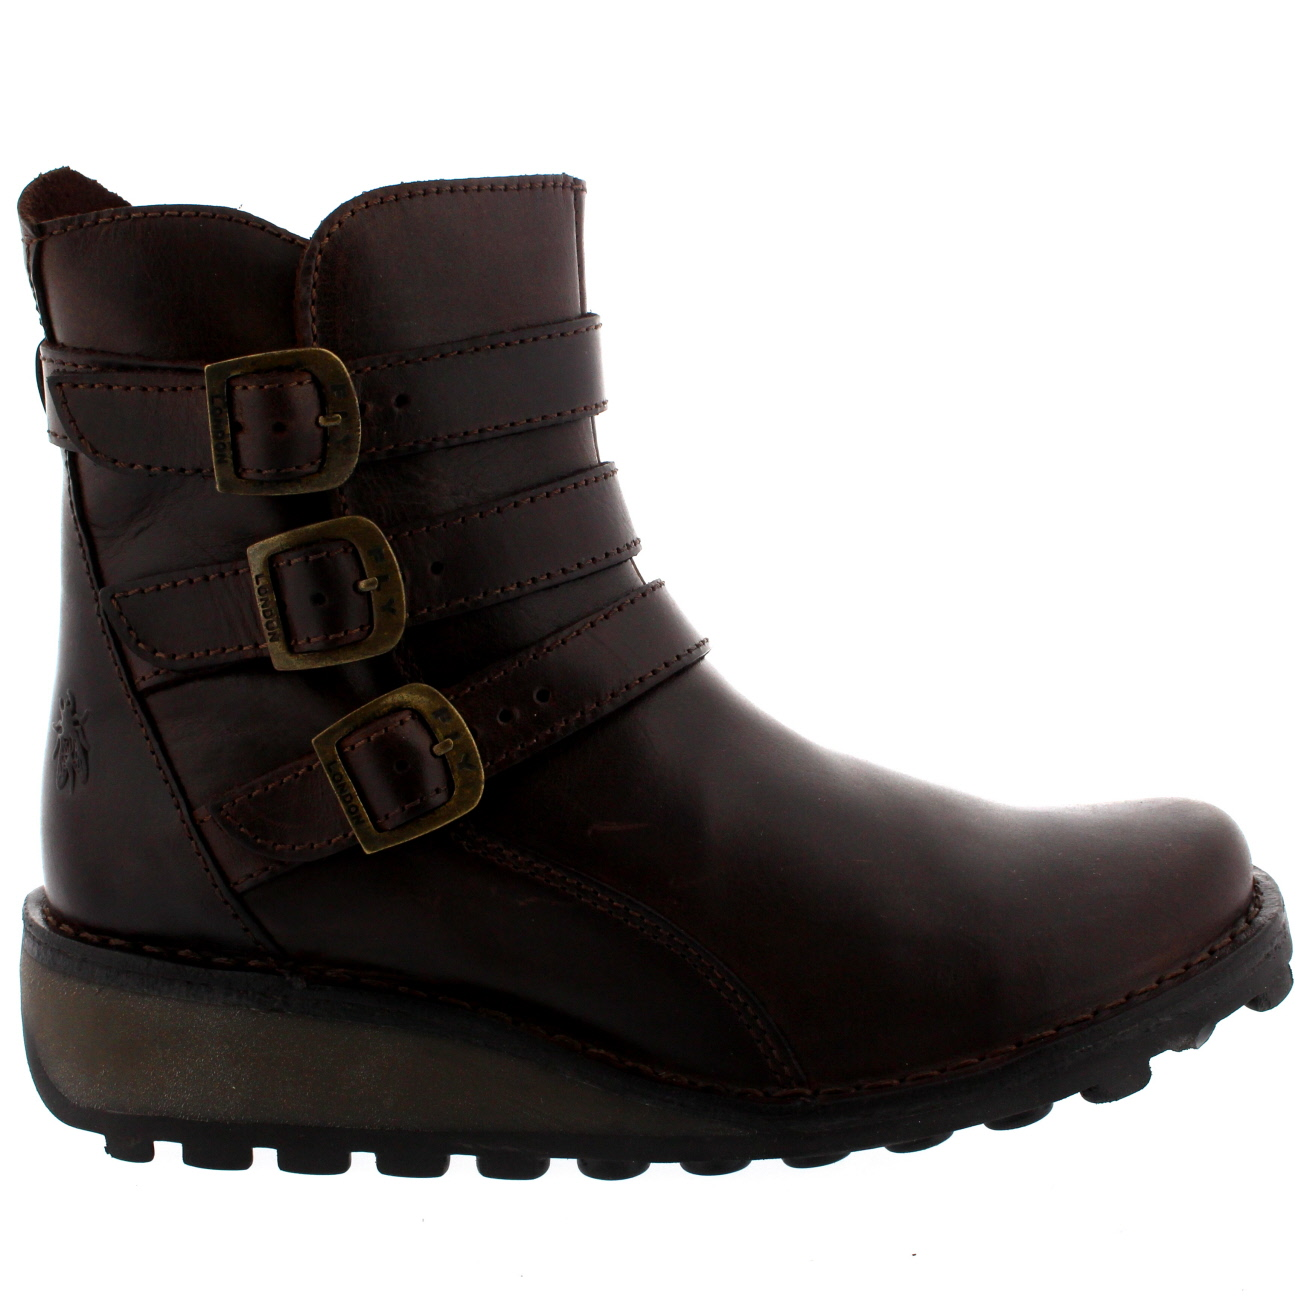 Free shipping on women's boots at downiloadojg.gq Shop all types of boots for women including riding boots, knee-high boots and rain boots from the best brands including UGG, Timberland, Hunter and more. Totally free shipping & returns.